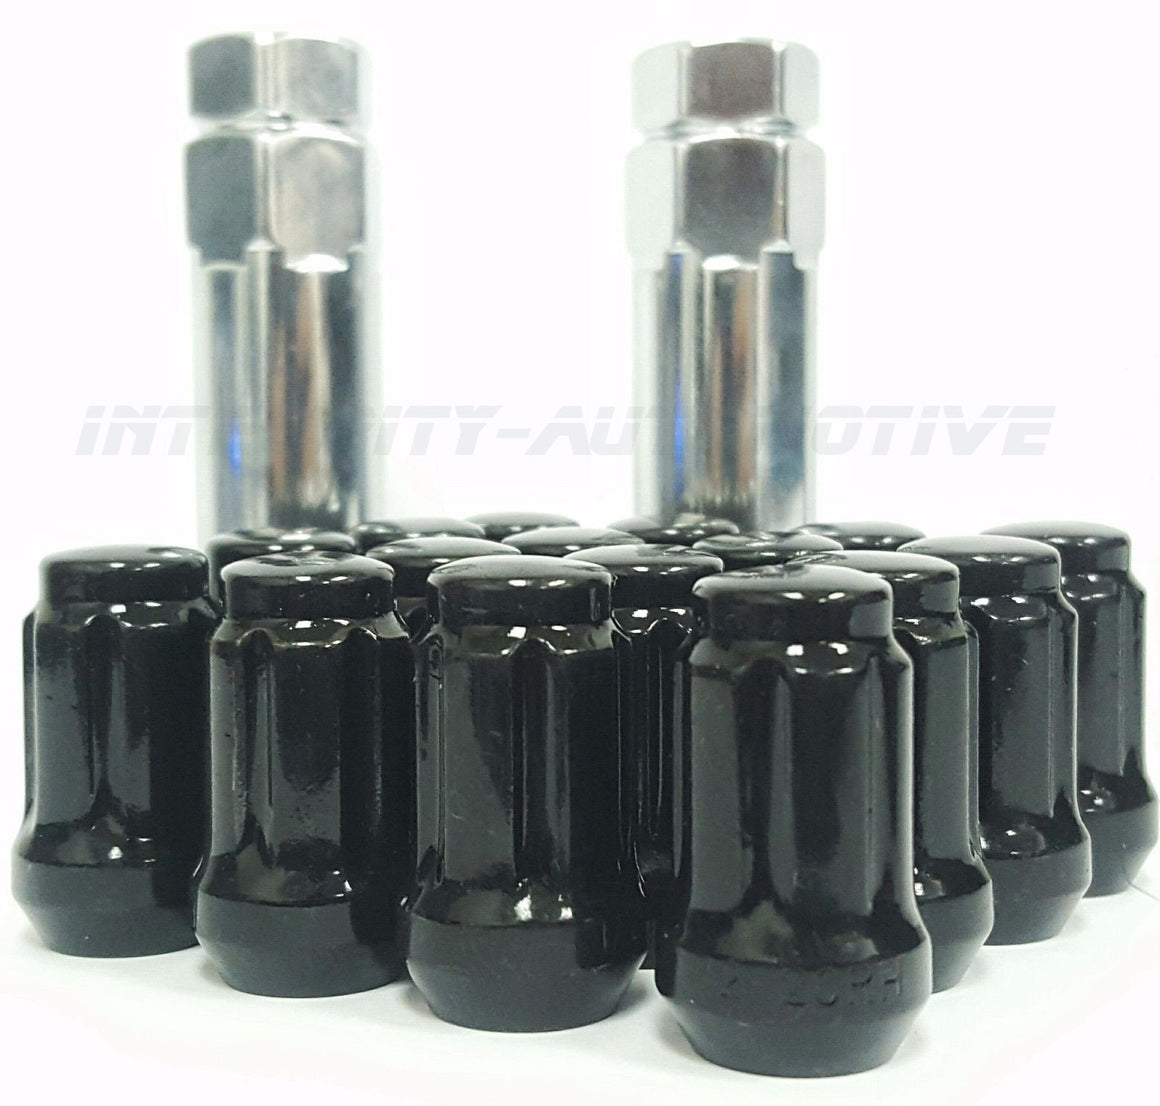 20 Black Spline Racing Lug Nuts 12x1.25 Fits All BRZ FRS STI TOYOTA 86 WRX 5x114.3 Wheels